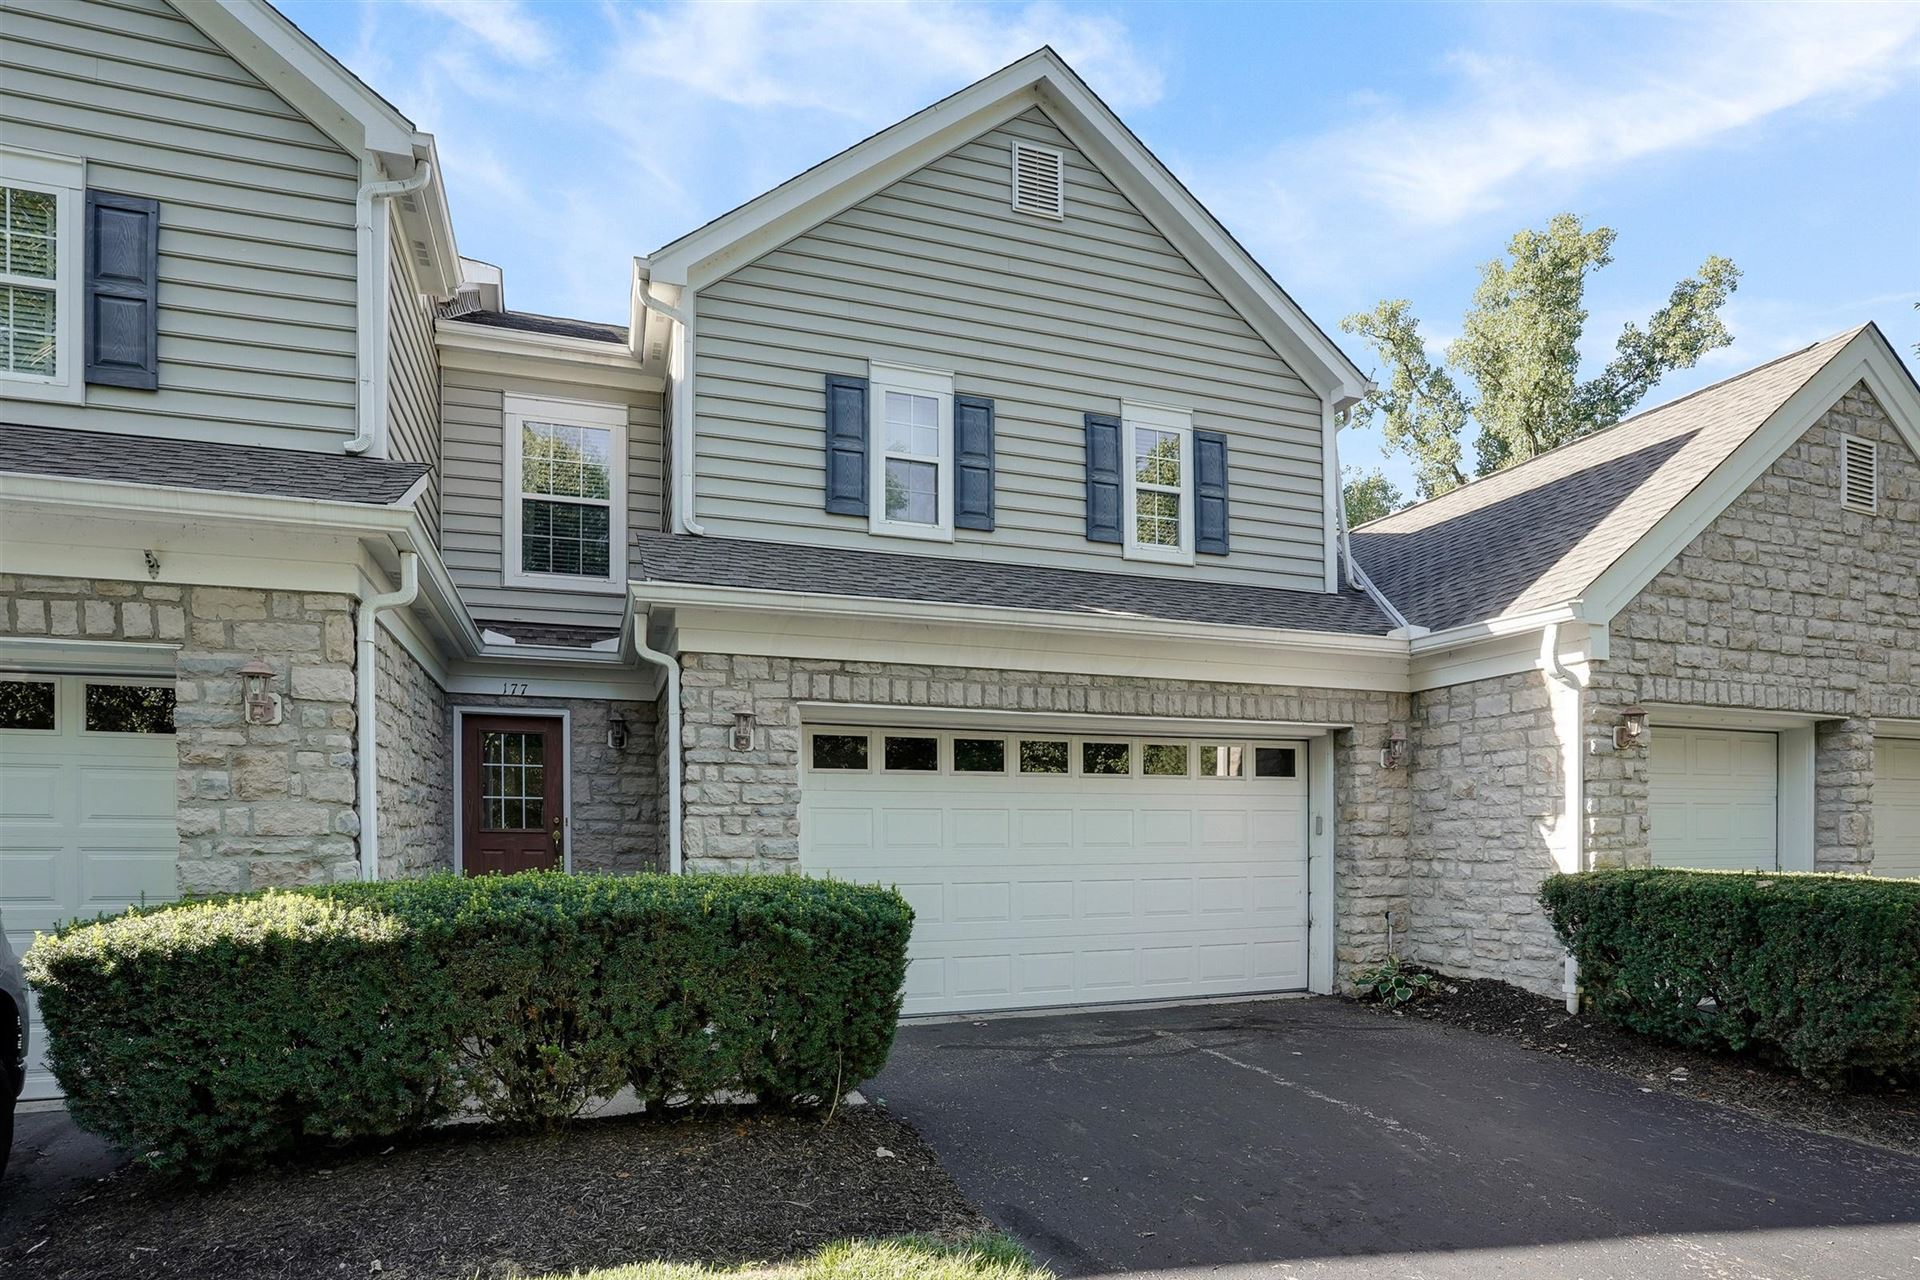 177 Trails End, Westerville, OH 43082 - MLS#: 220031027